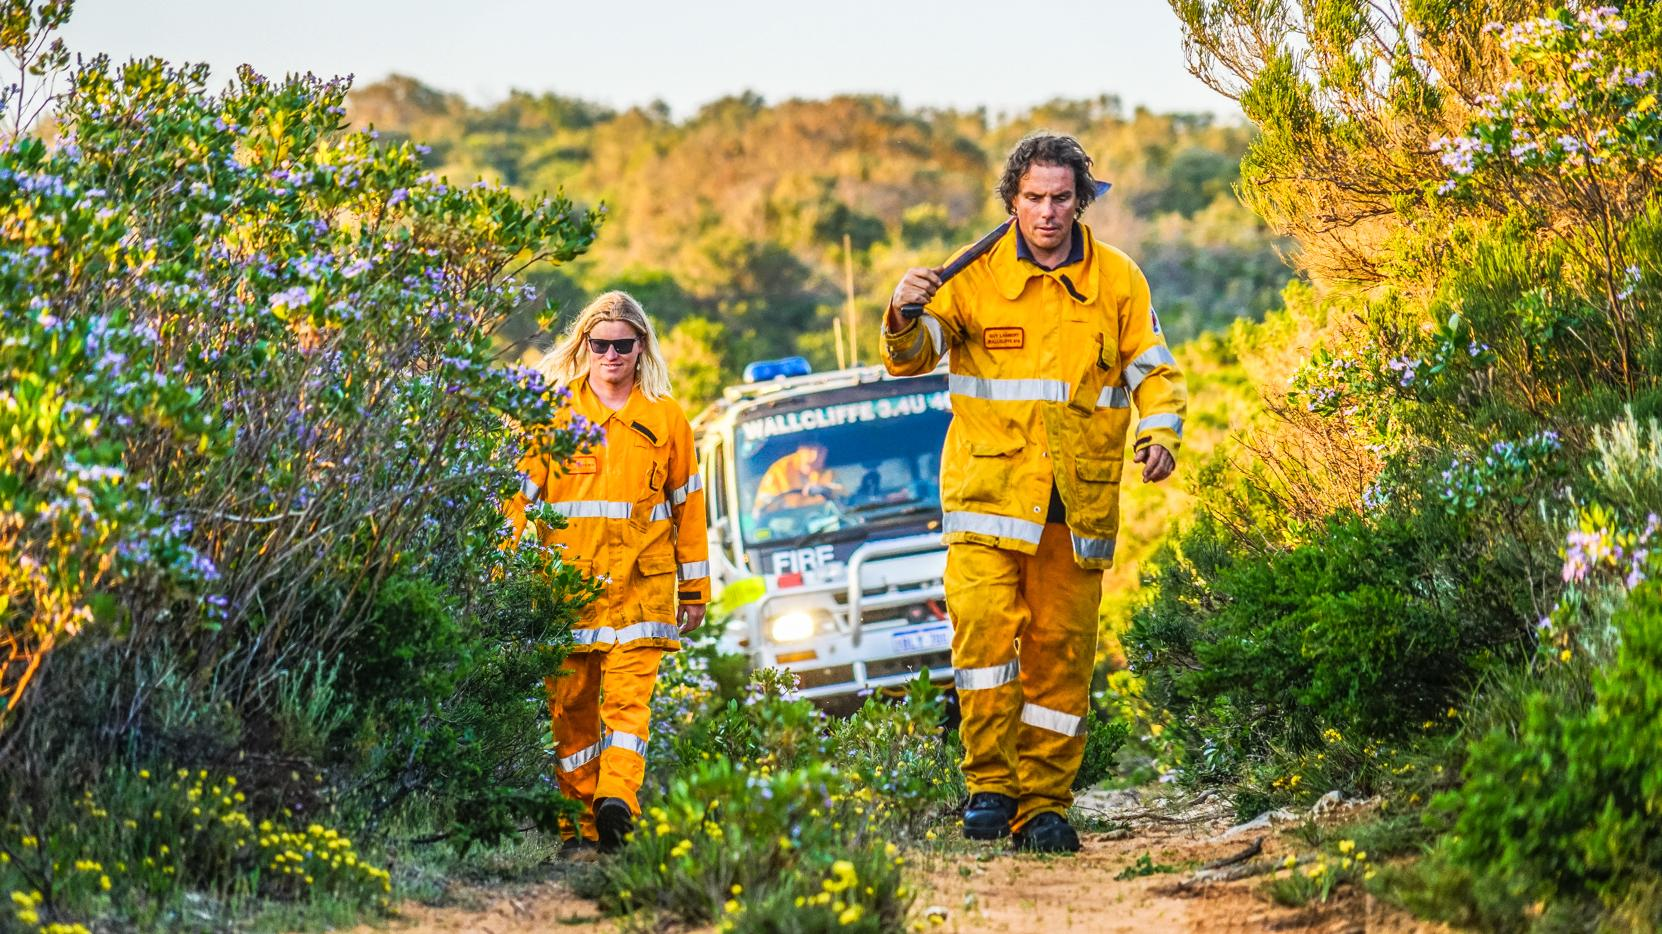 Wallcliffe Volunteer Fire Brigade say fuel loads near Prevelly and Gnarabup are at a similar level to 2011, before the devastating bushfire that destroyed 39 homes.Picture: Picture: Sean Blocksidge/Wallcliffe Volunteer Fire Brigade, Sean Blocksidge/Wallcliffe Volunteer Fire Brigade.